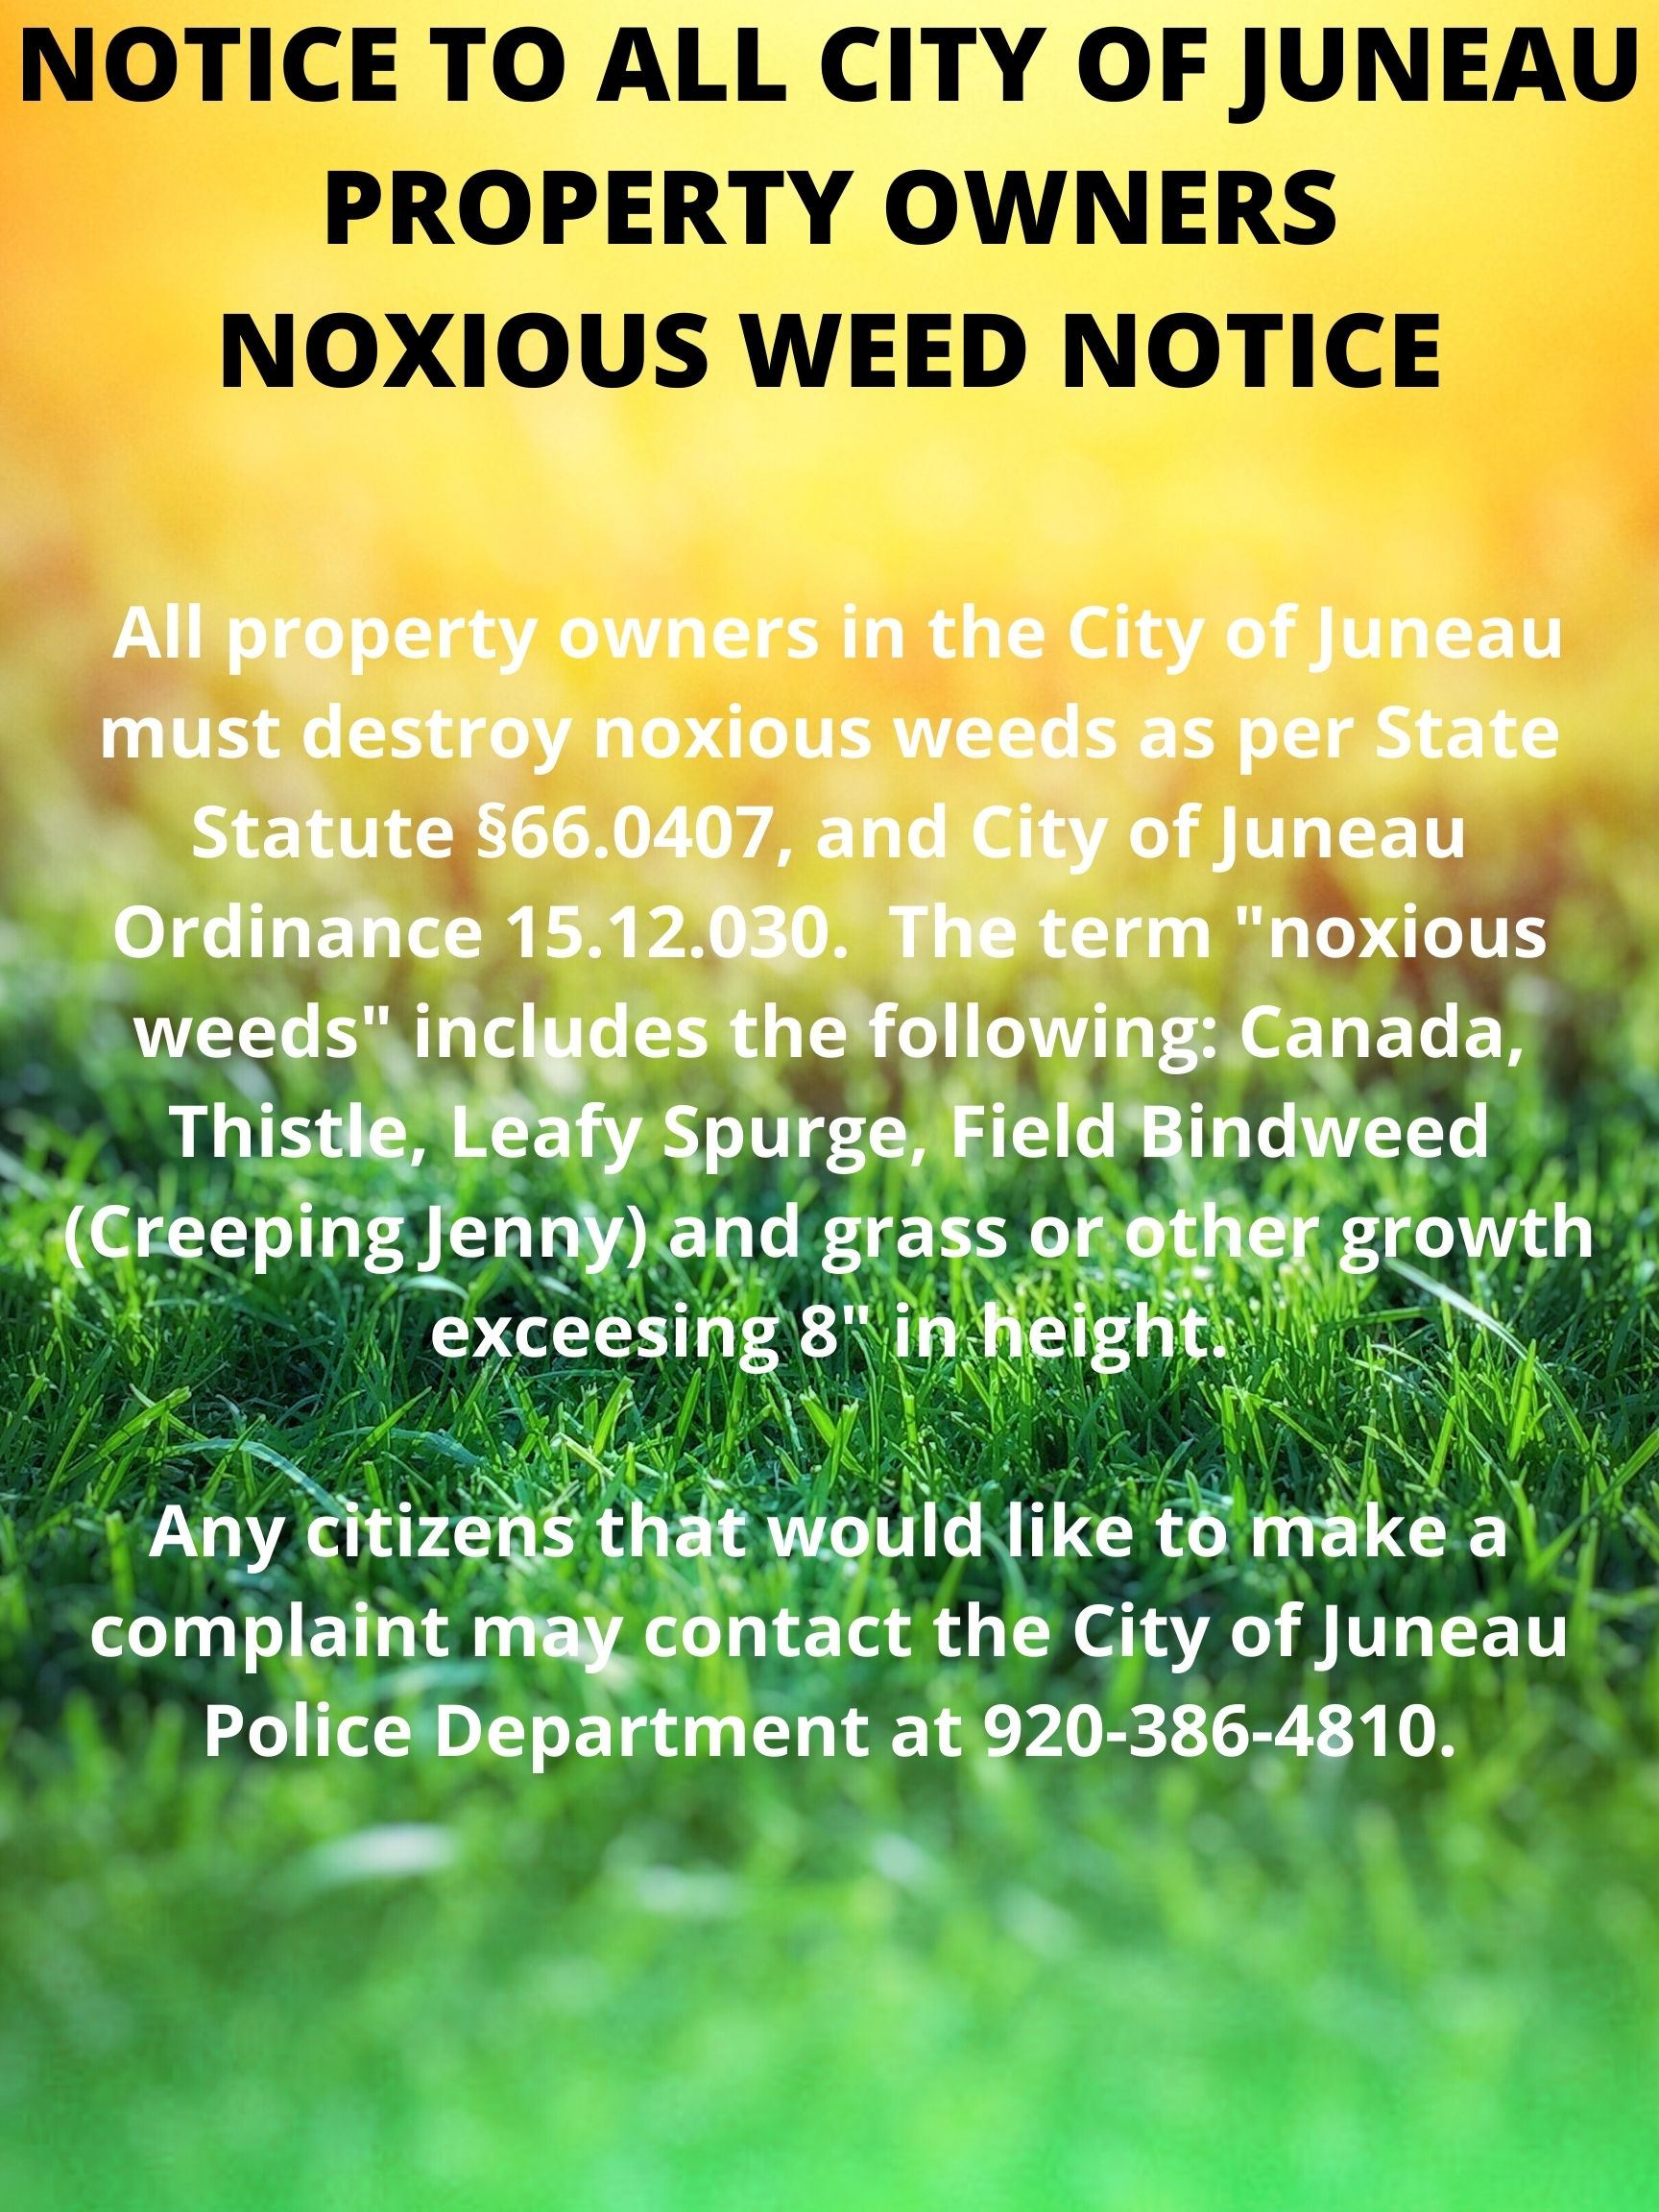 NOTICE TO ALL CITY OF JUNEAU PROPERTY OWNERS NOXIOUS WEED NOTICE